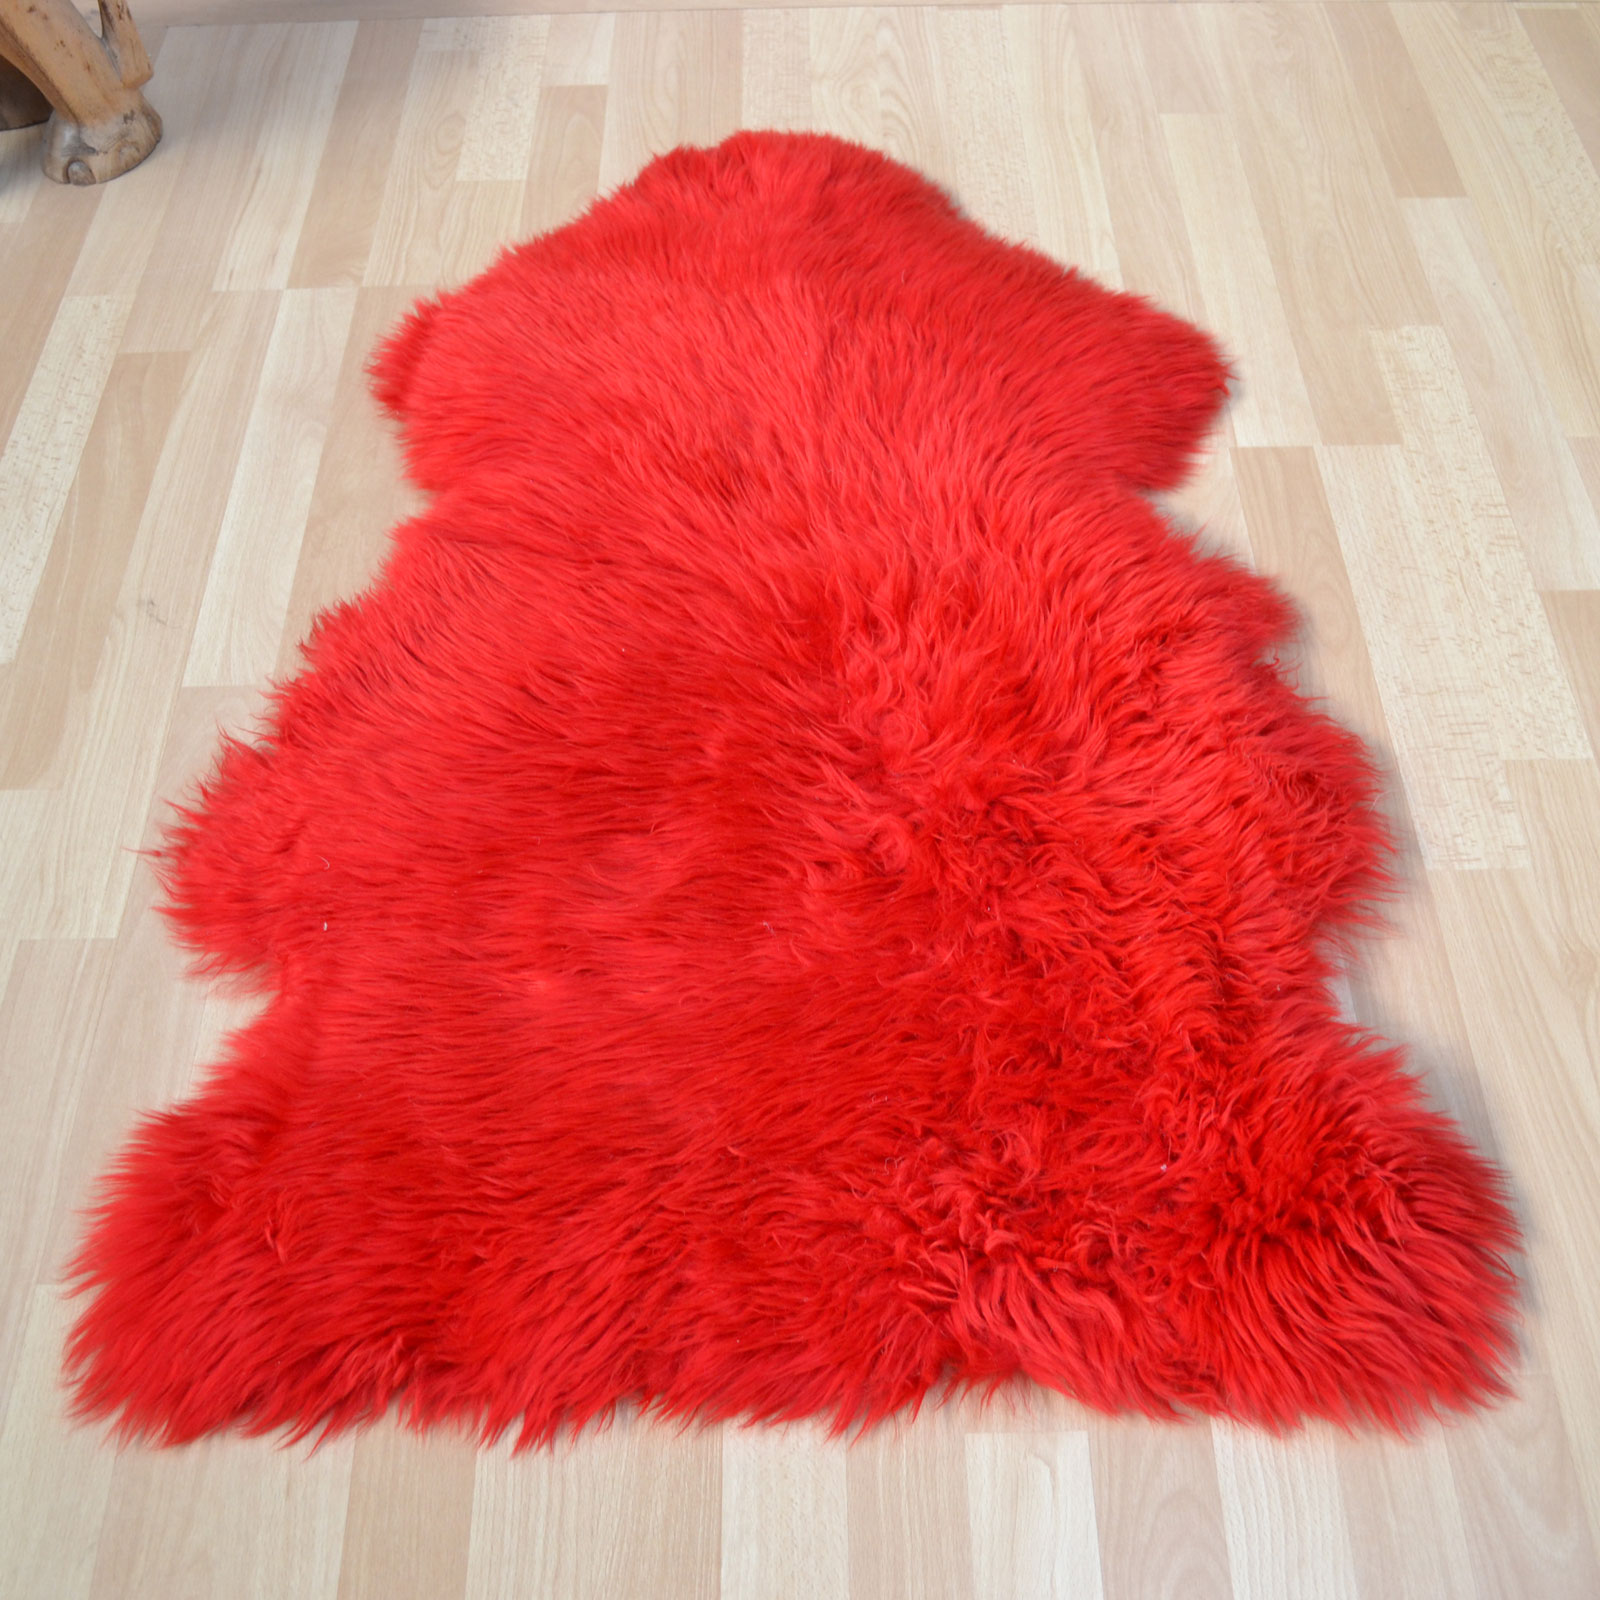 Bowron Sheepskin Rugs in Wildfire